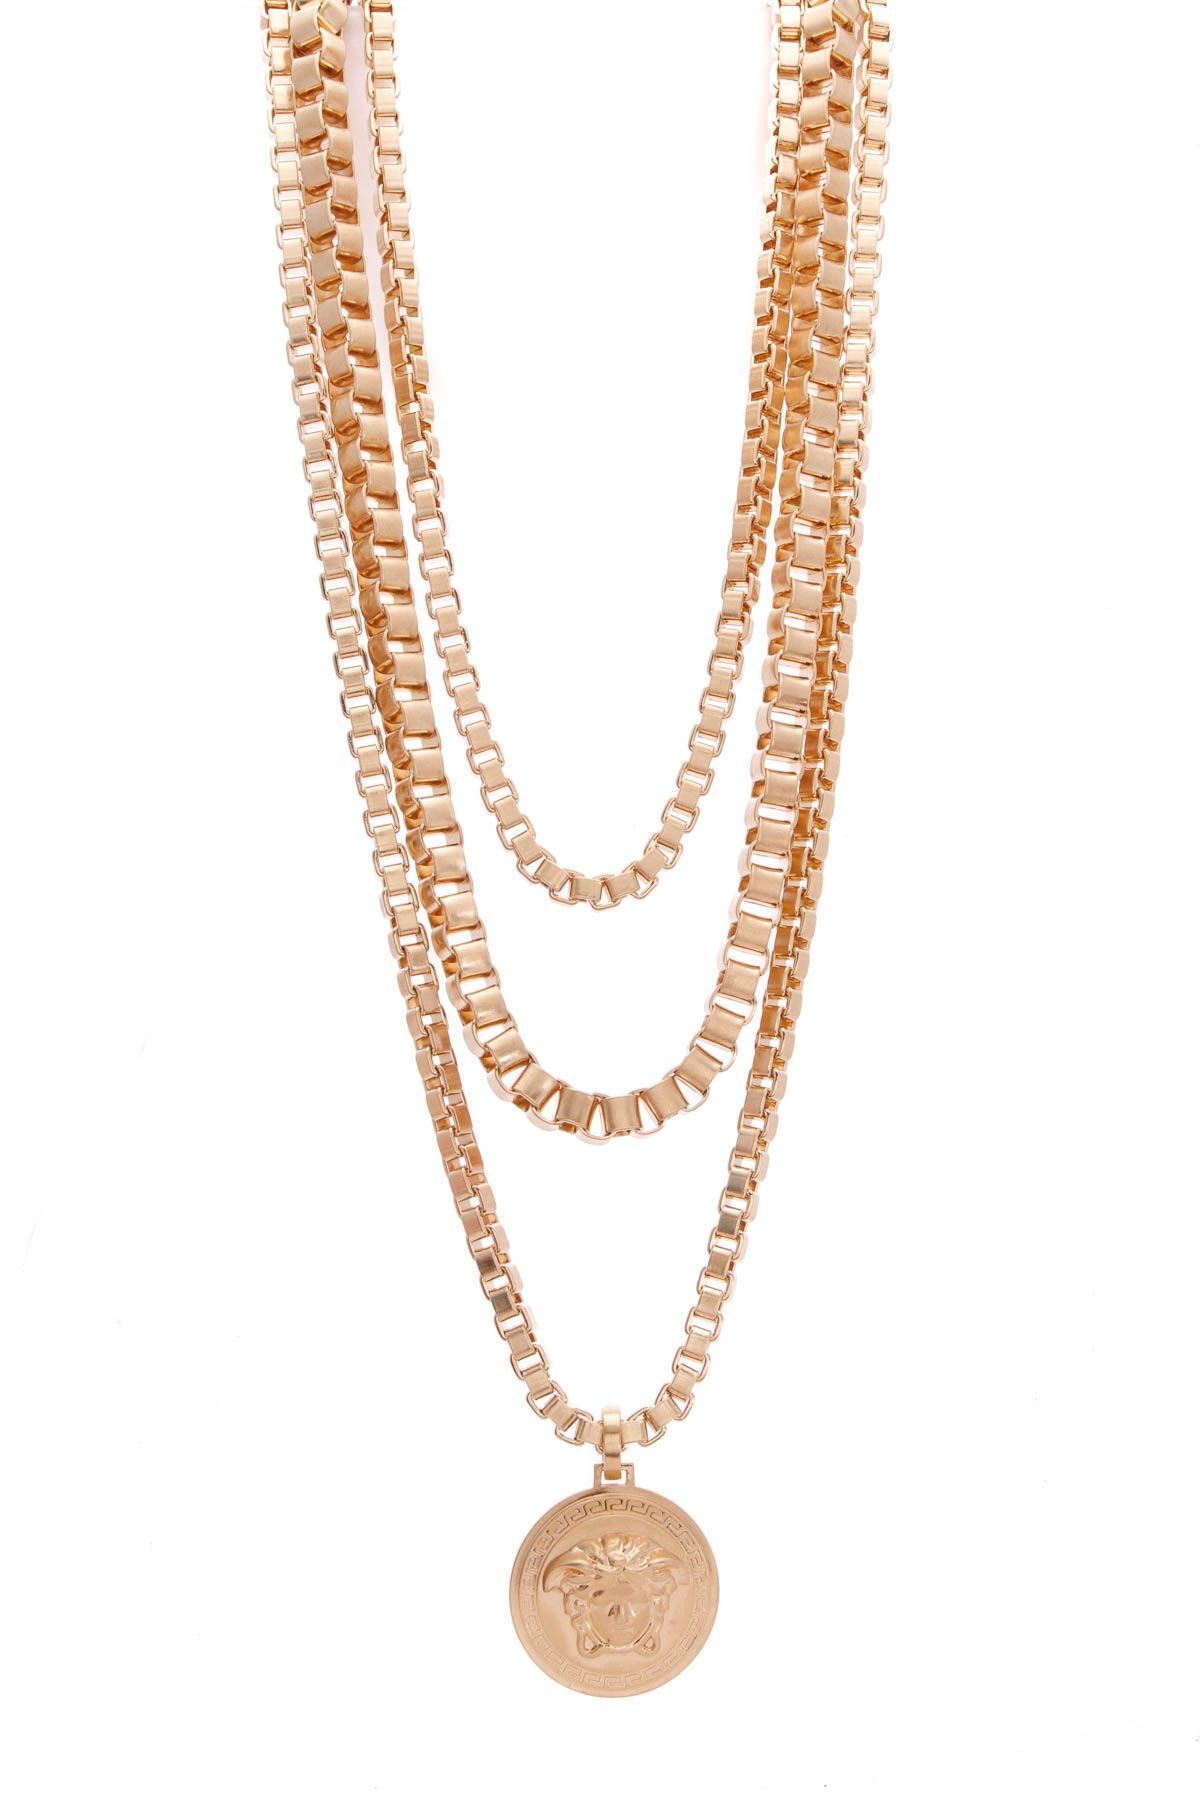 When it comes to a statement necklace versace does it best shop